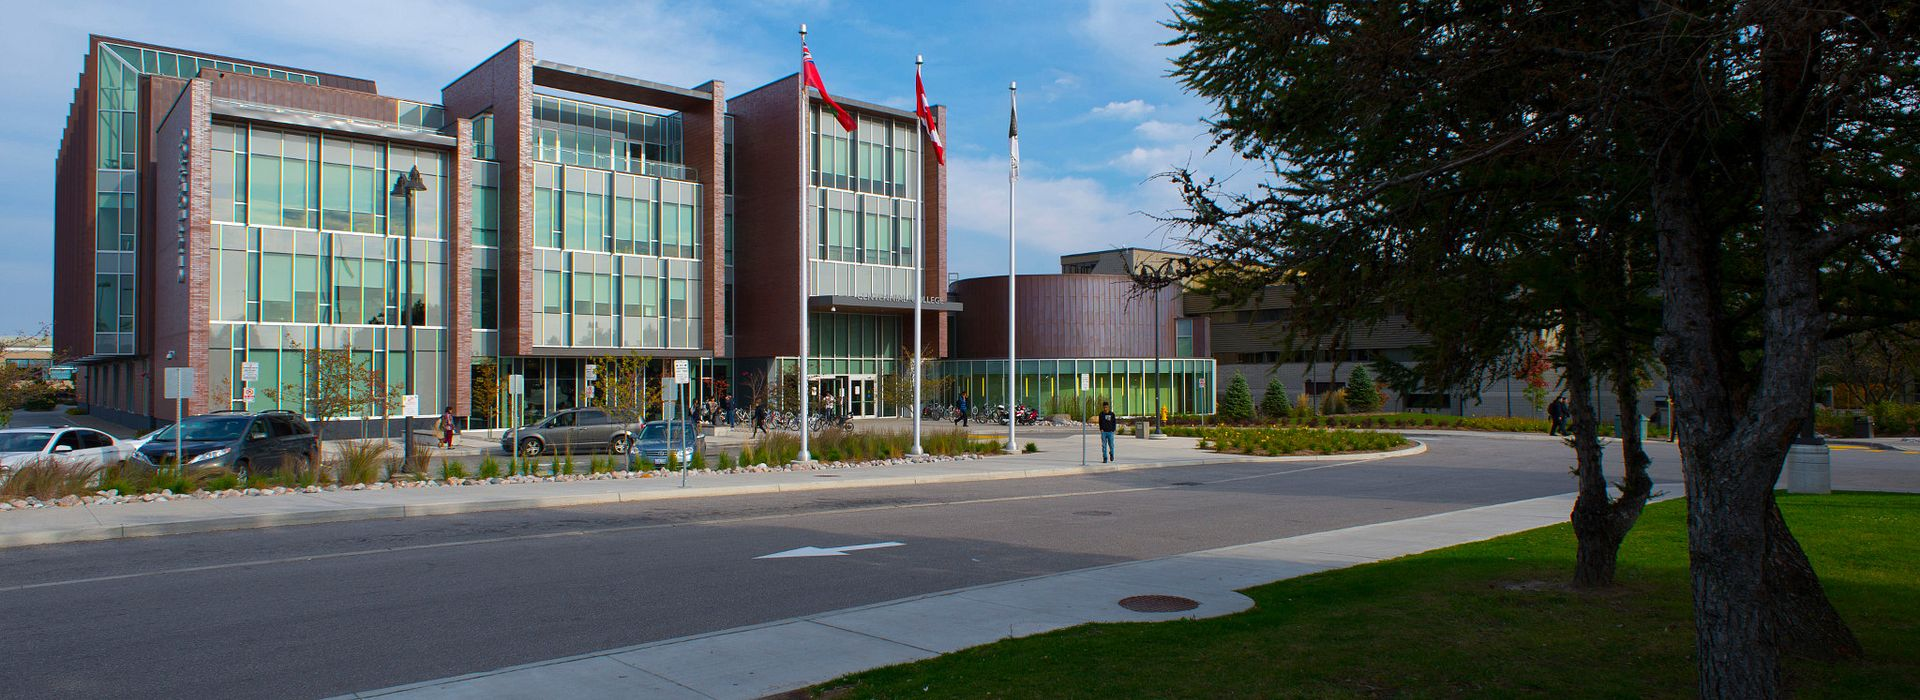 picture of the Centennial College program campus library entrance